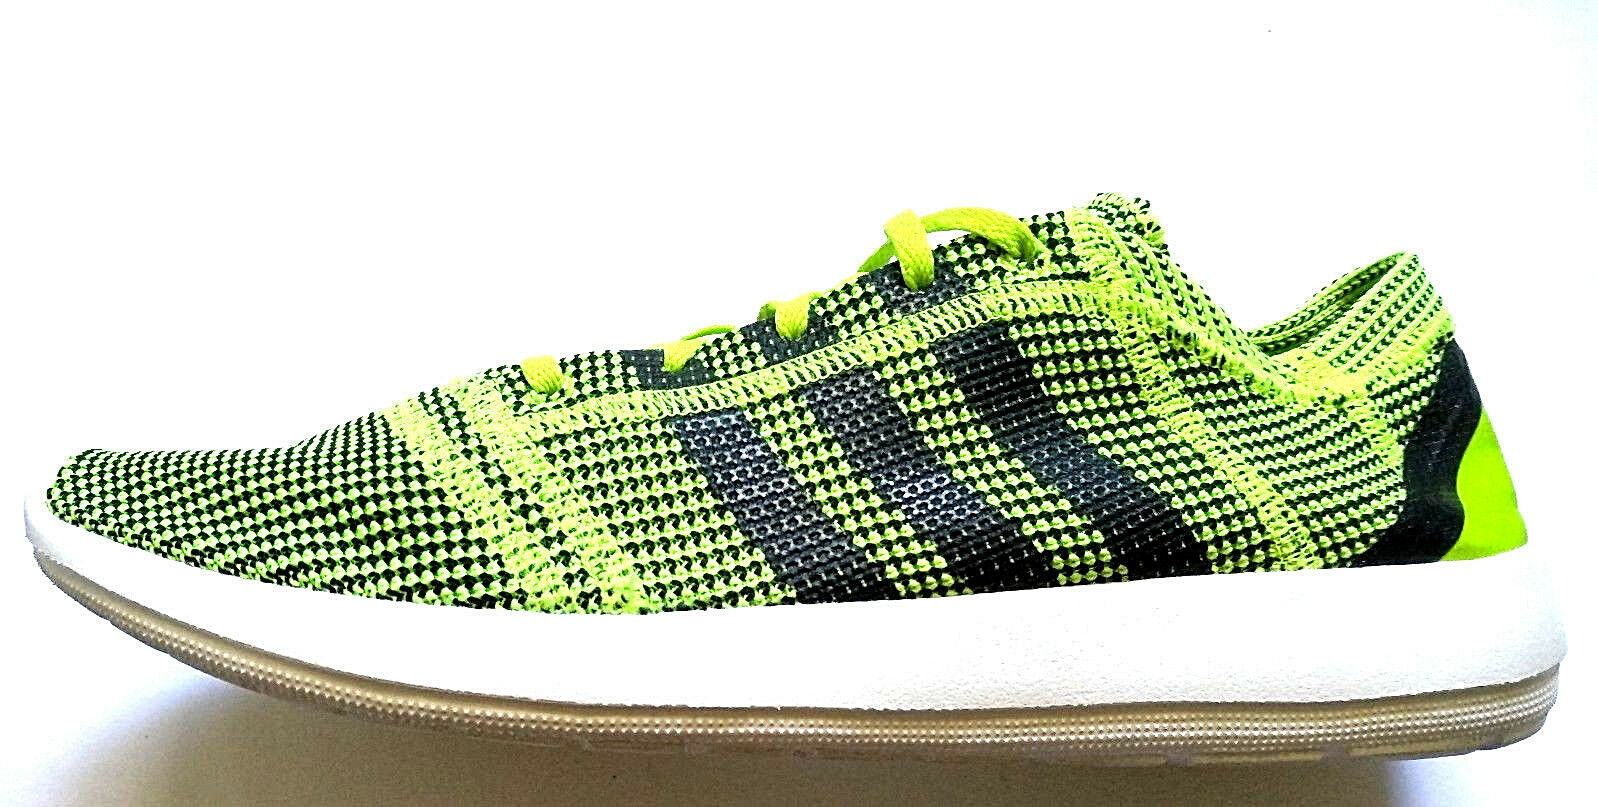 Adidas Element Refine Tricot M Green/Black-Black M18916 Men's Price reduction The most popular shoes for men and women